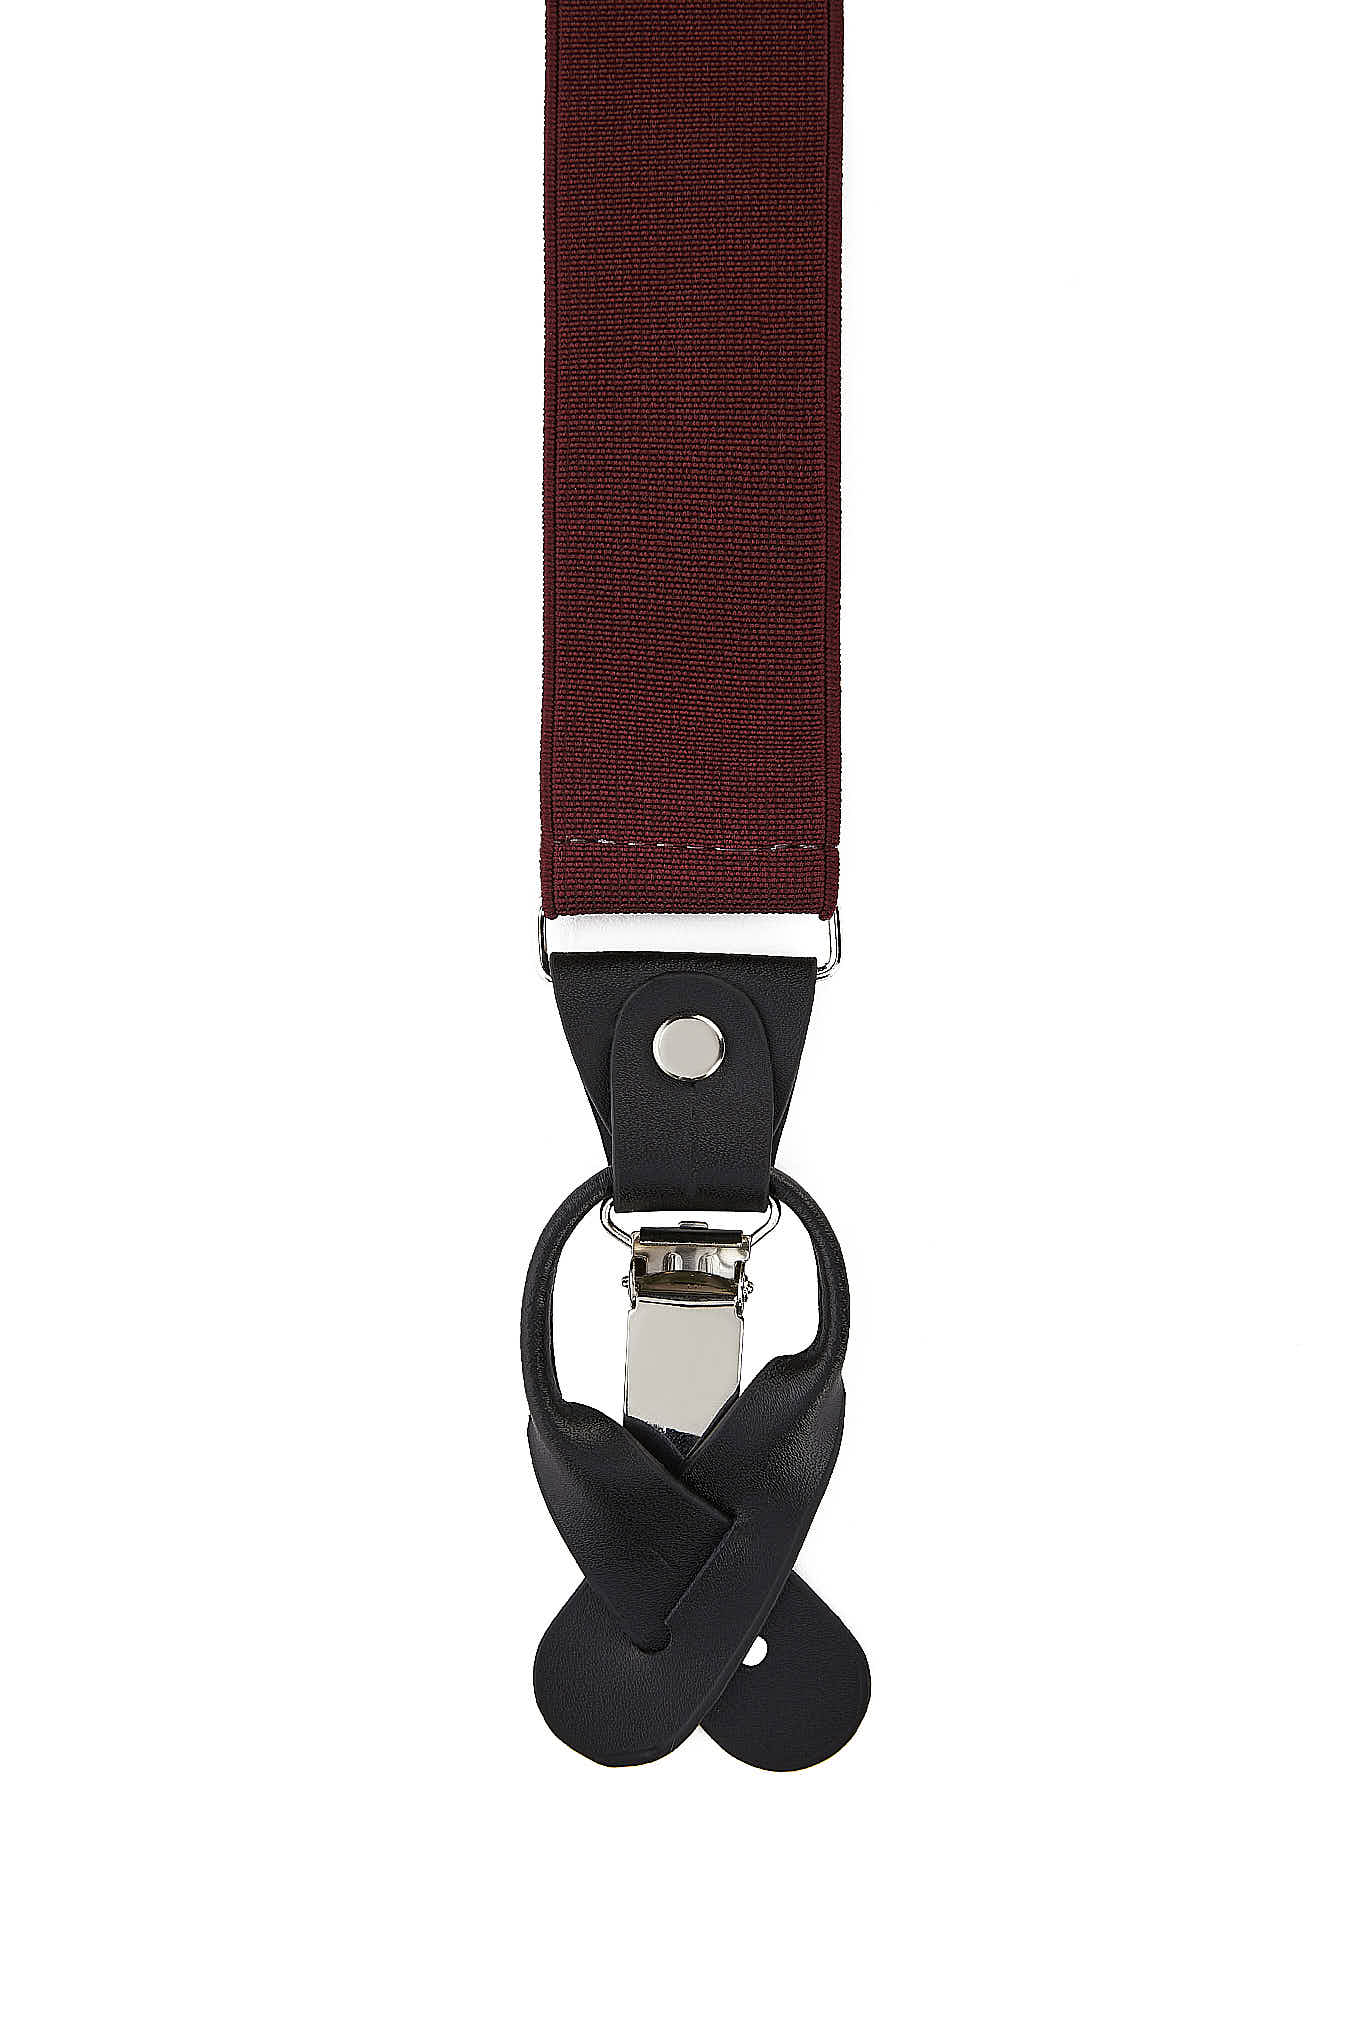 Suspenders Bordeaux Casual Man